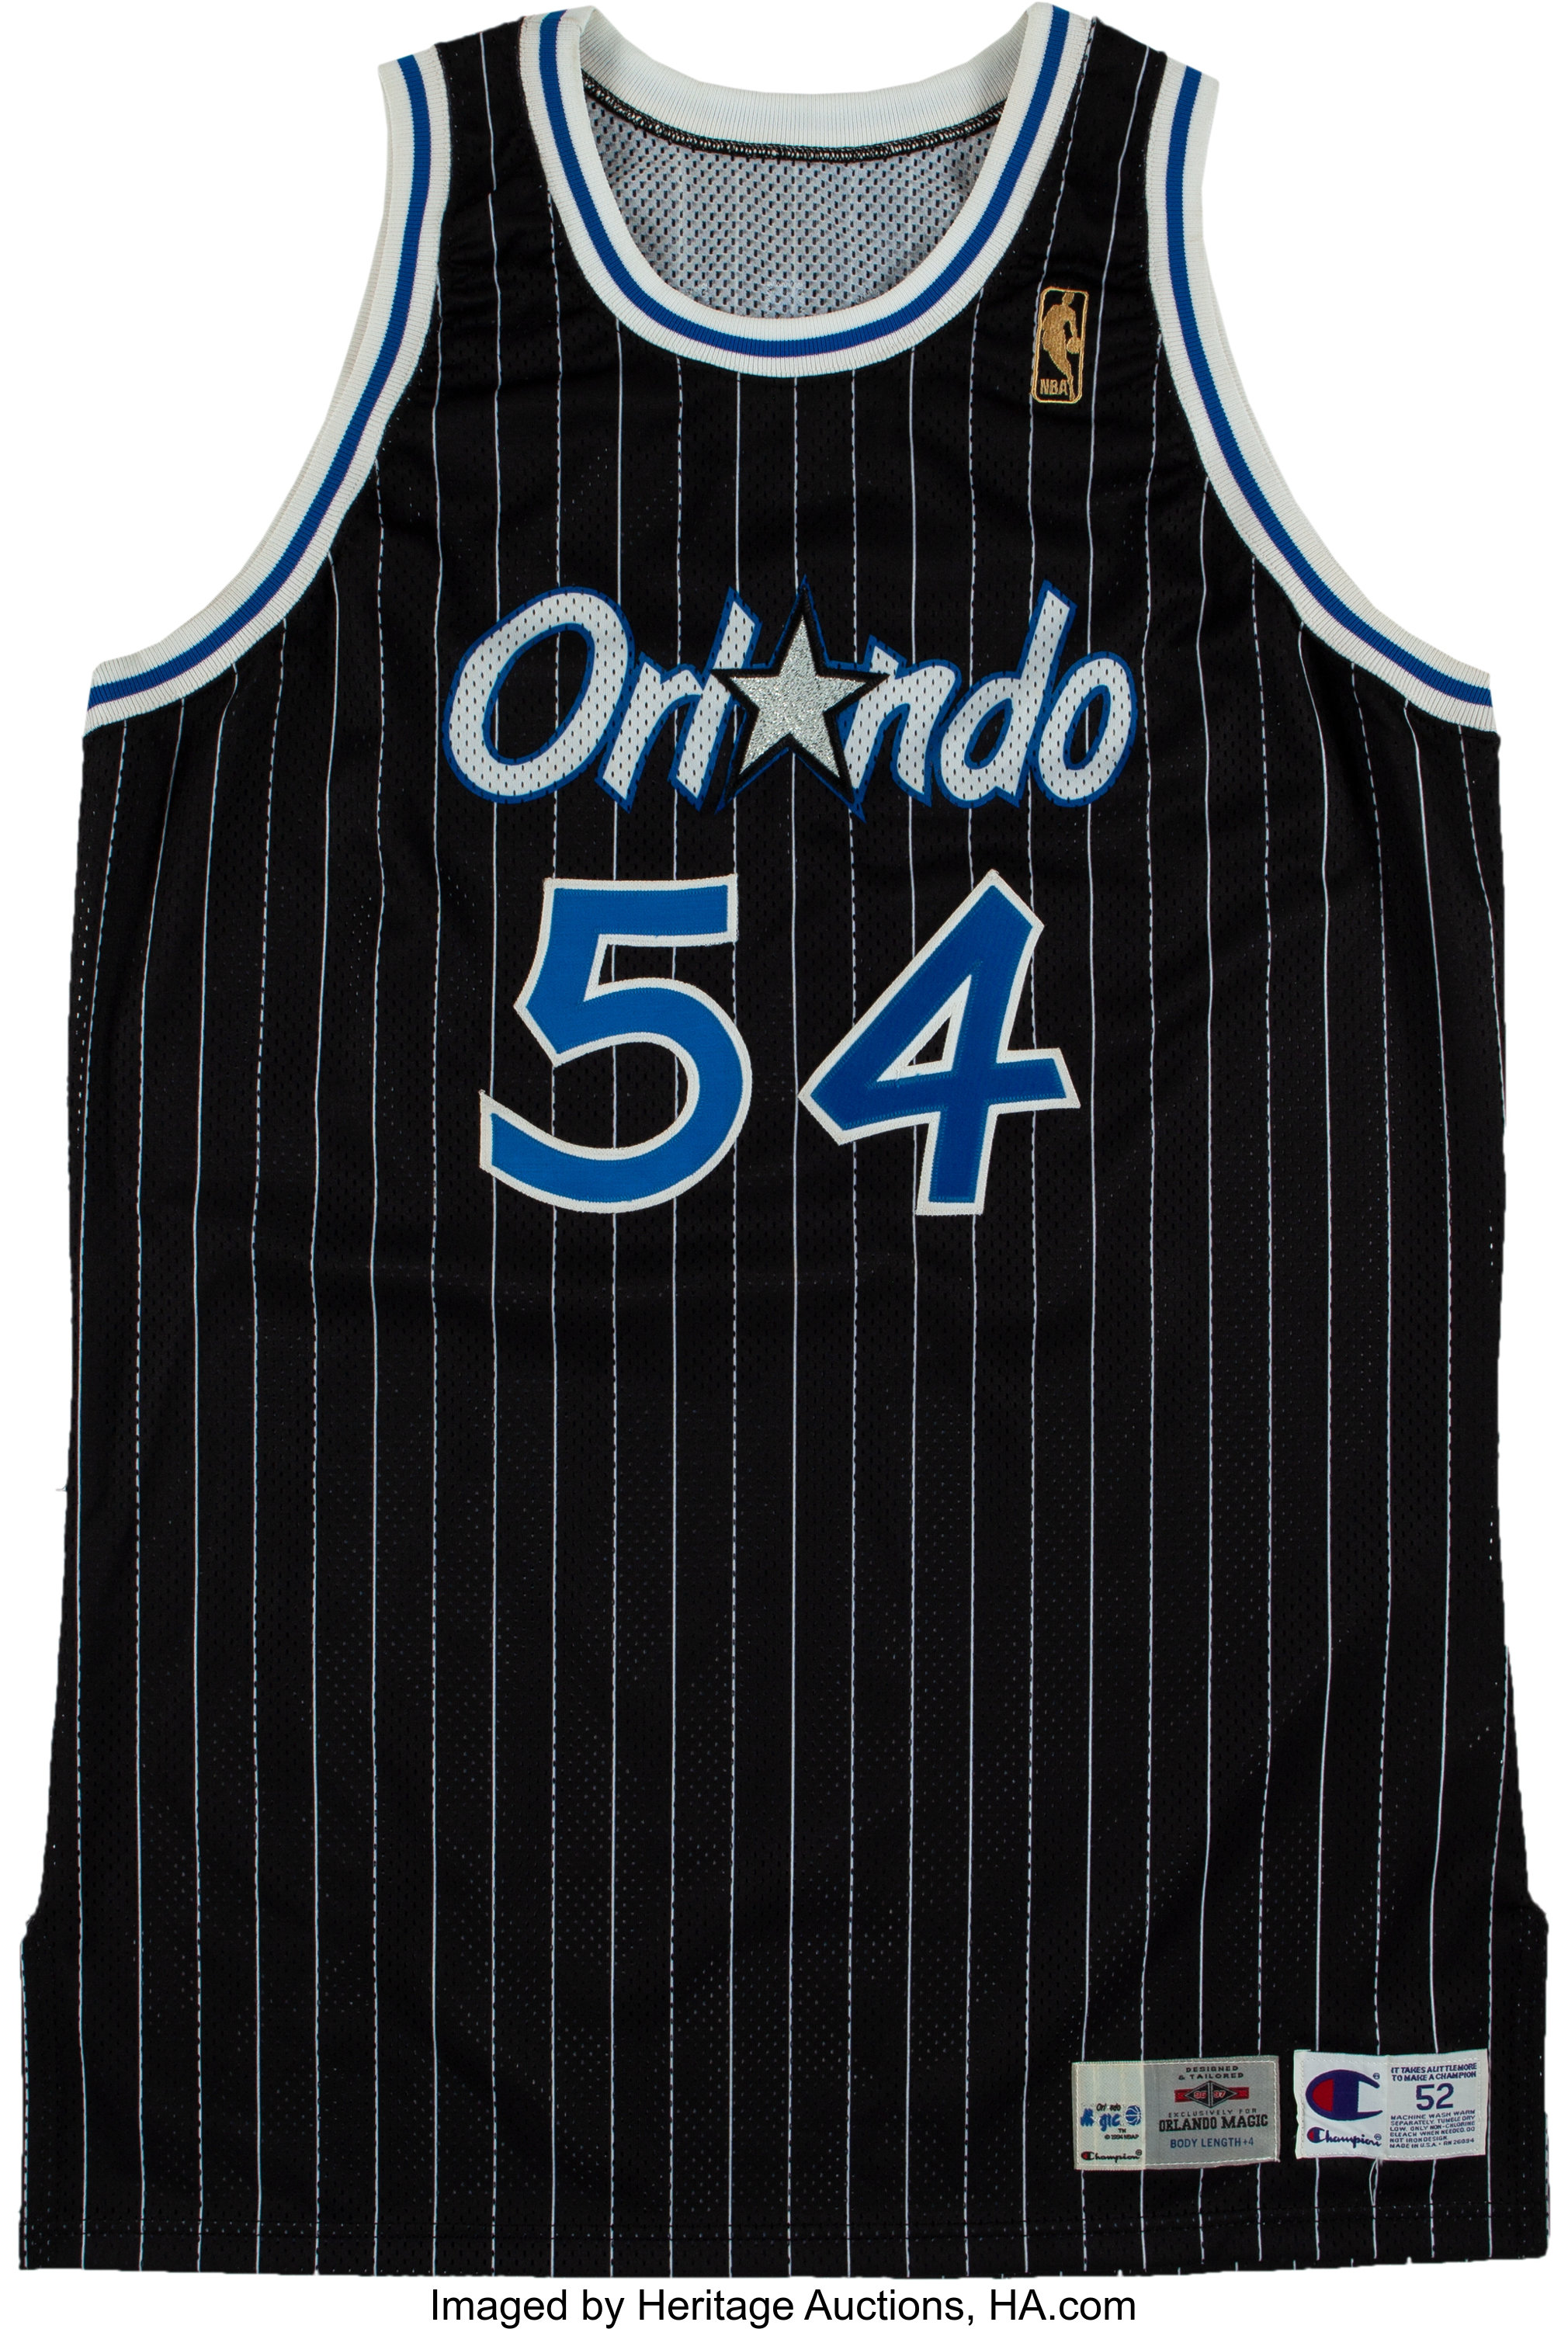 6b3ac0a6d03 1996-97 Horace Grant Game Worn & Signed Orlando Magic   Lot #51438    Heritage Auctions